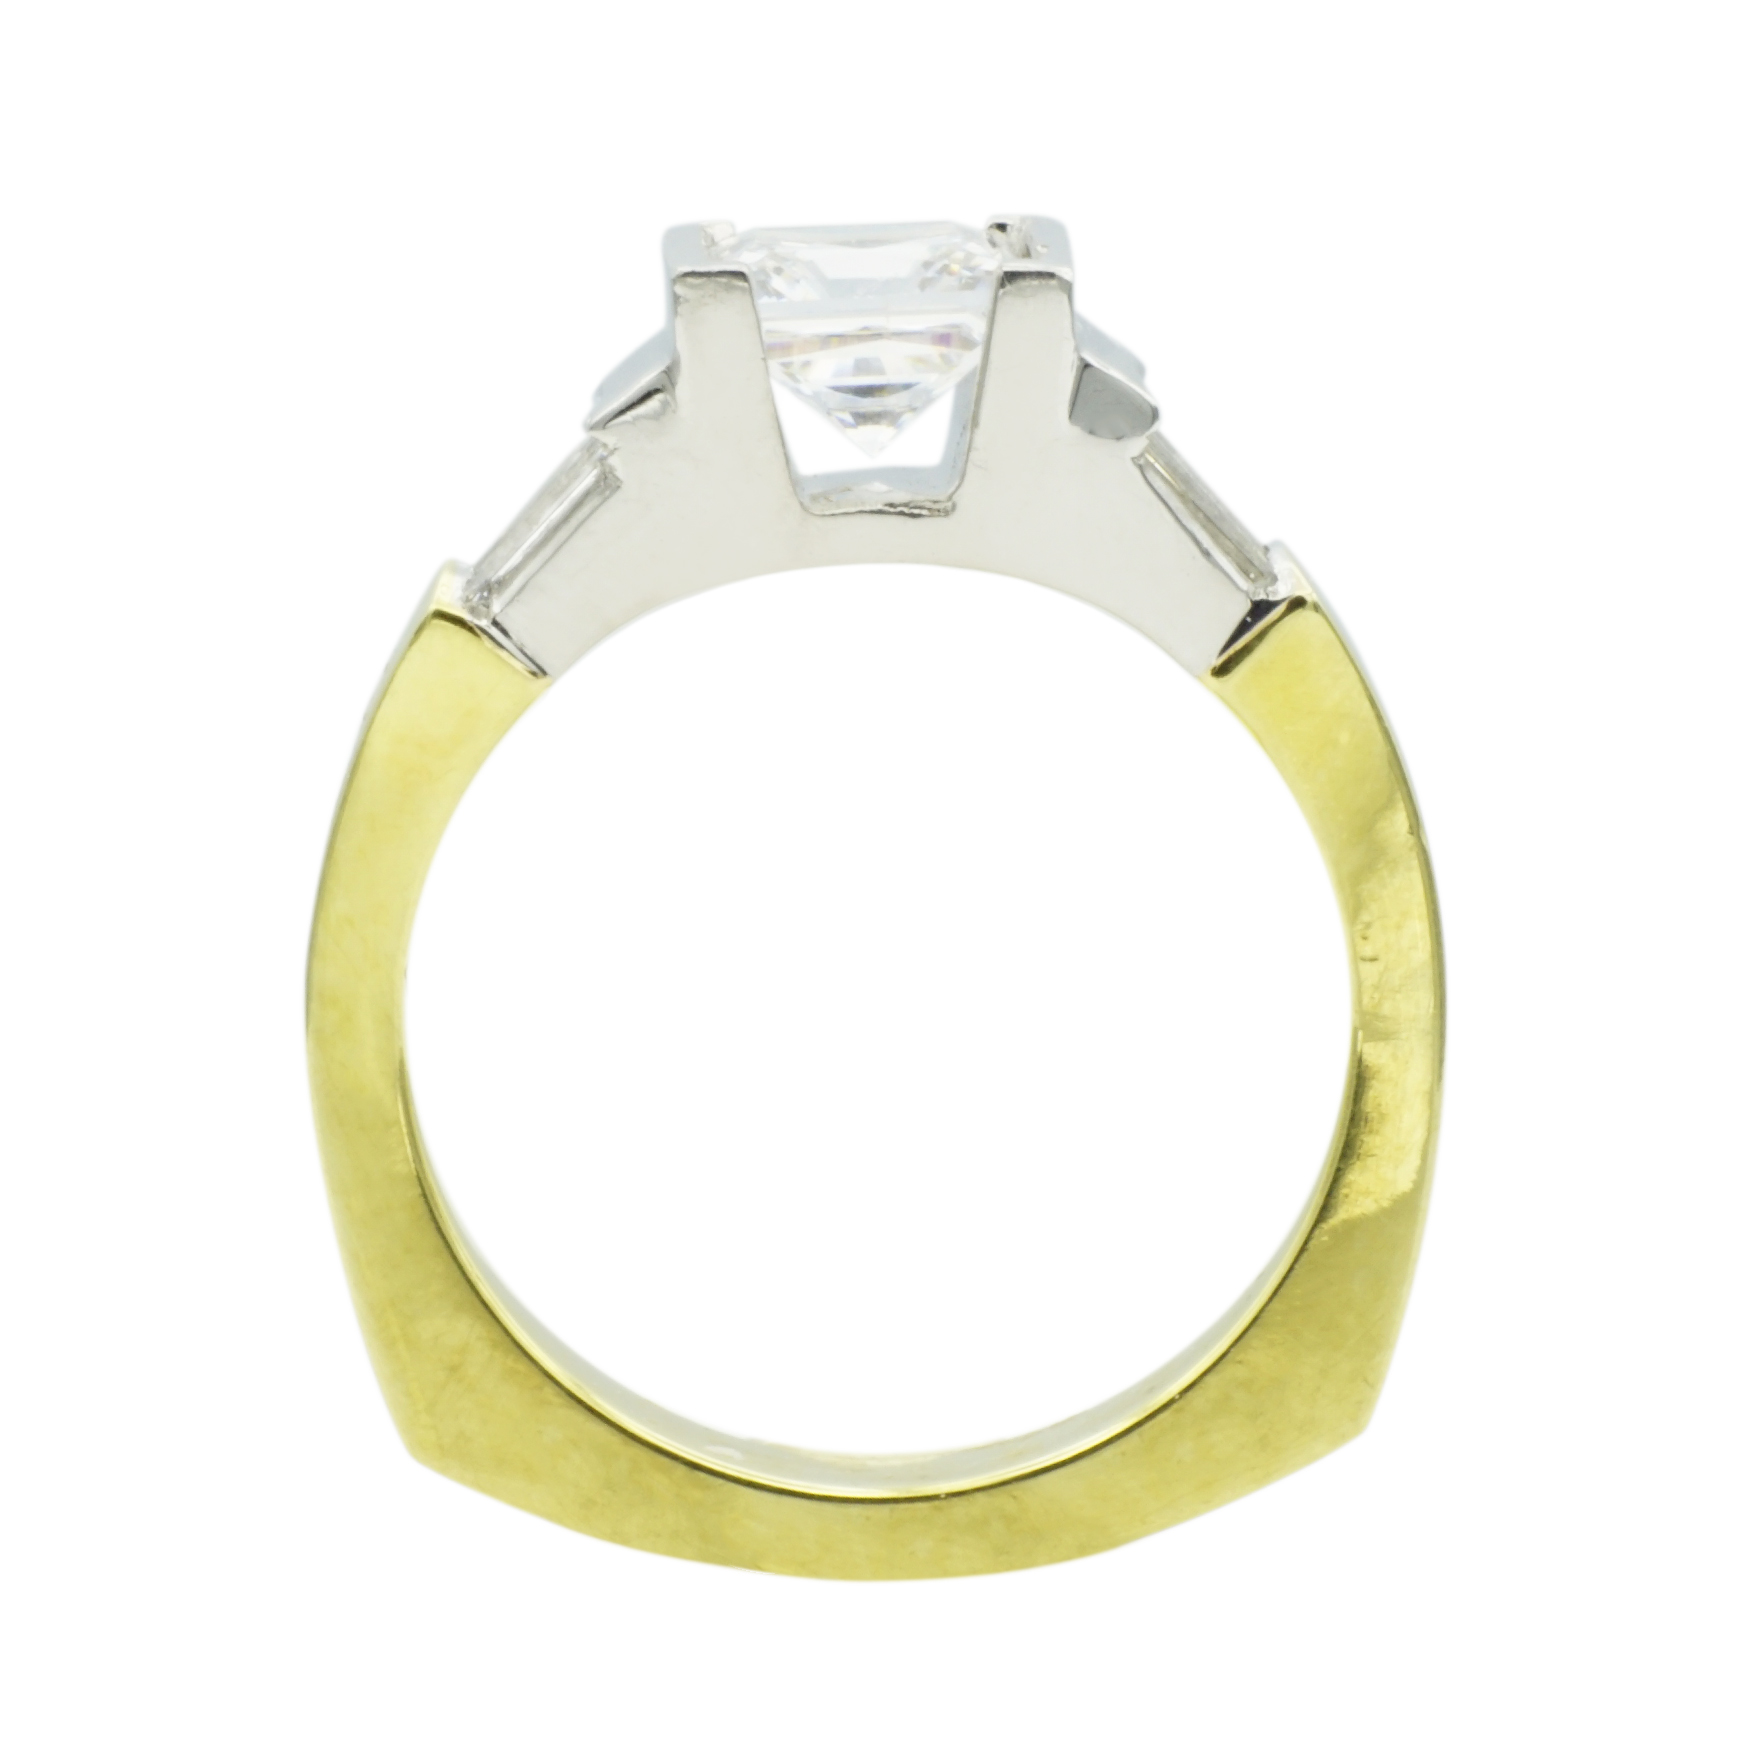 Princess Cut & Baguette Diamond Platinum & 18k Yellow Gold Engagement Ring - Front View